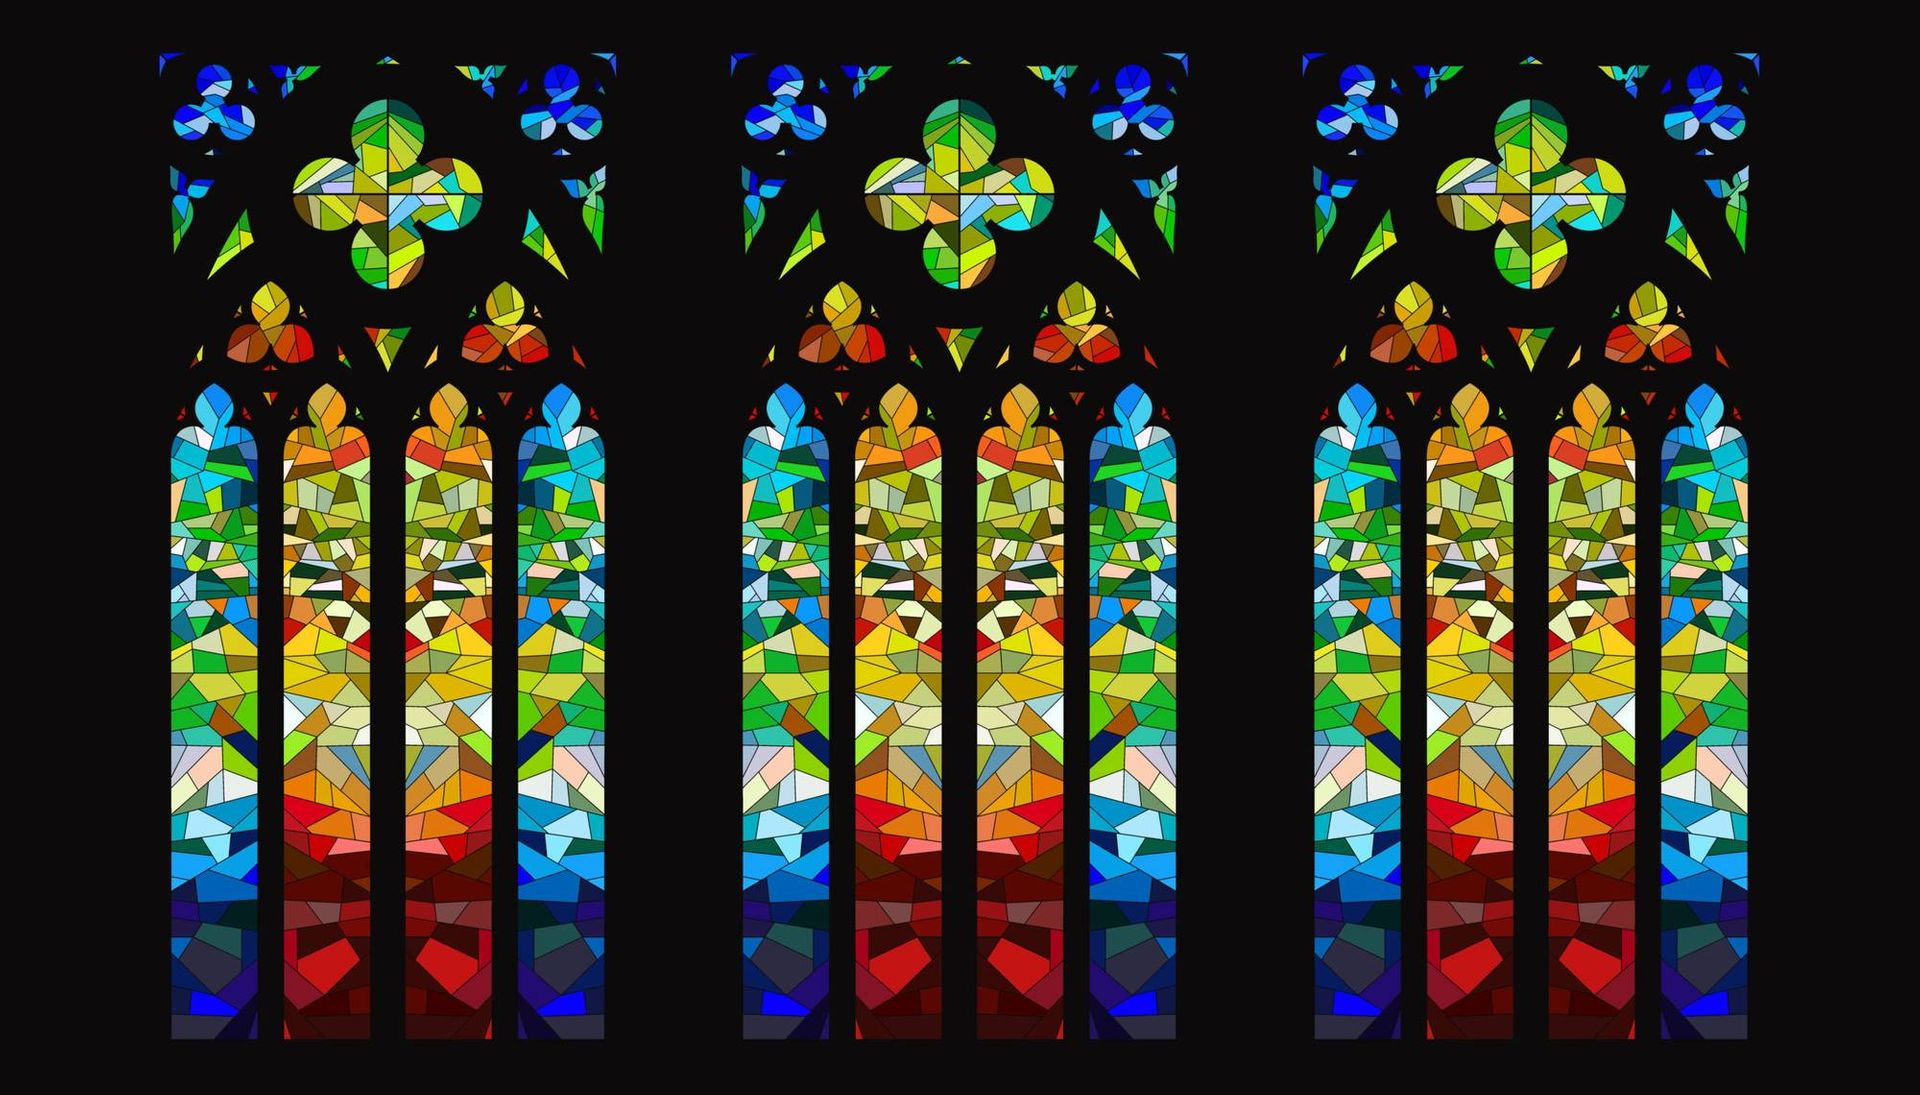 Illustration of three colorful stained glass windows in a church